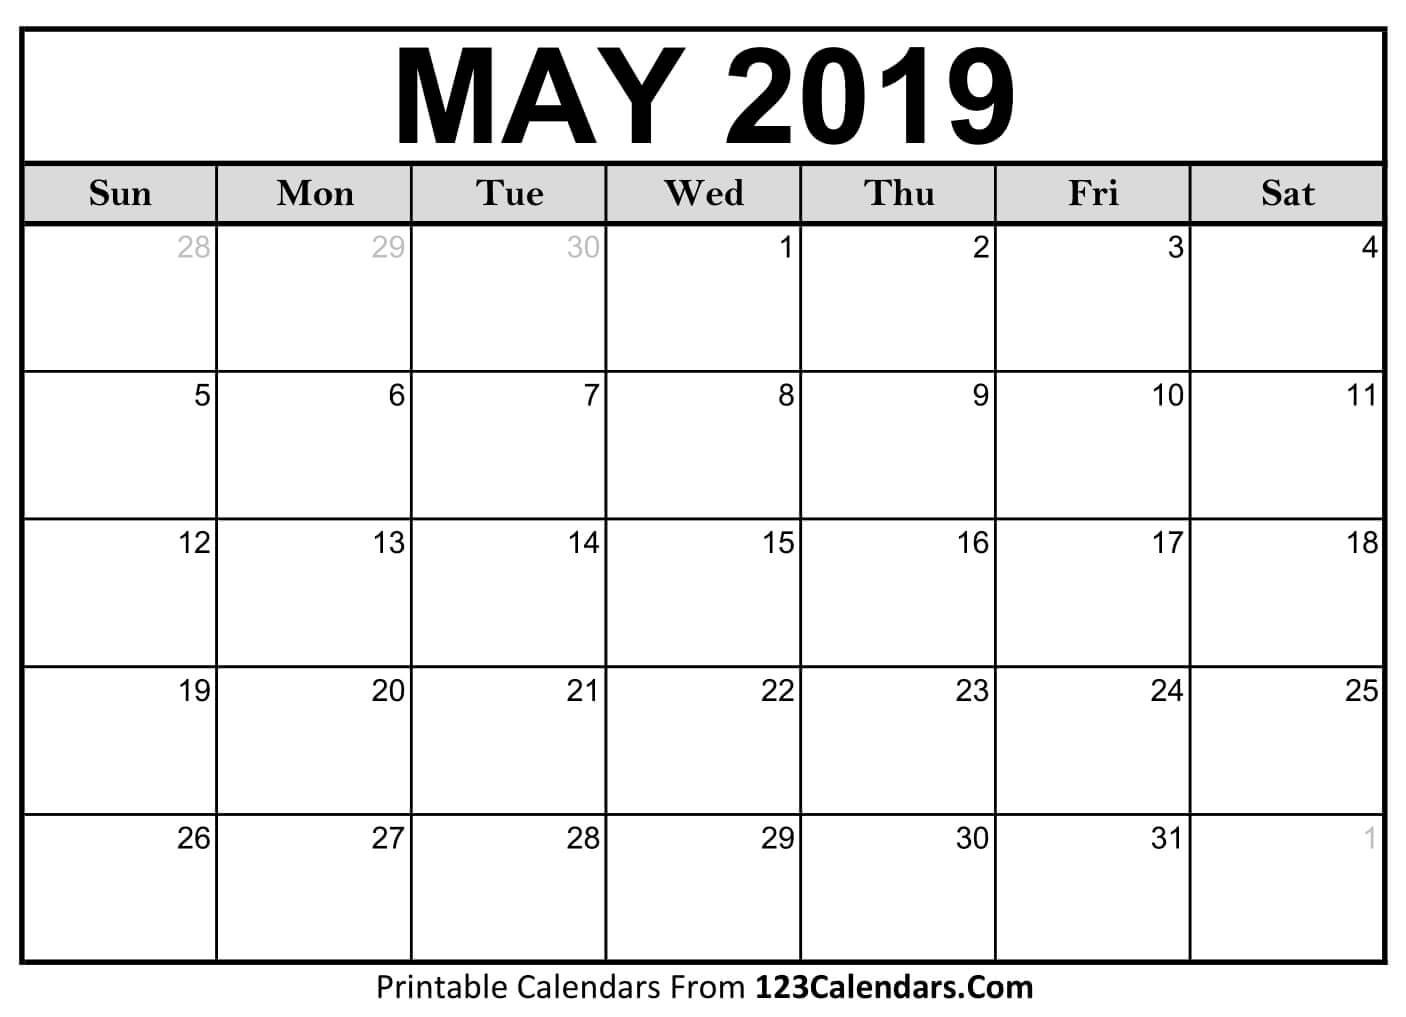 Printable May 2019 Calendar Templates - 123Calendars Calendar 2019 May